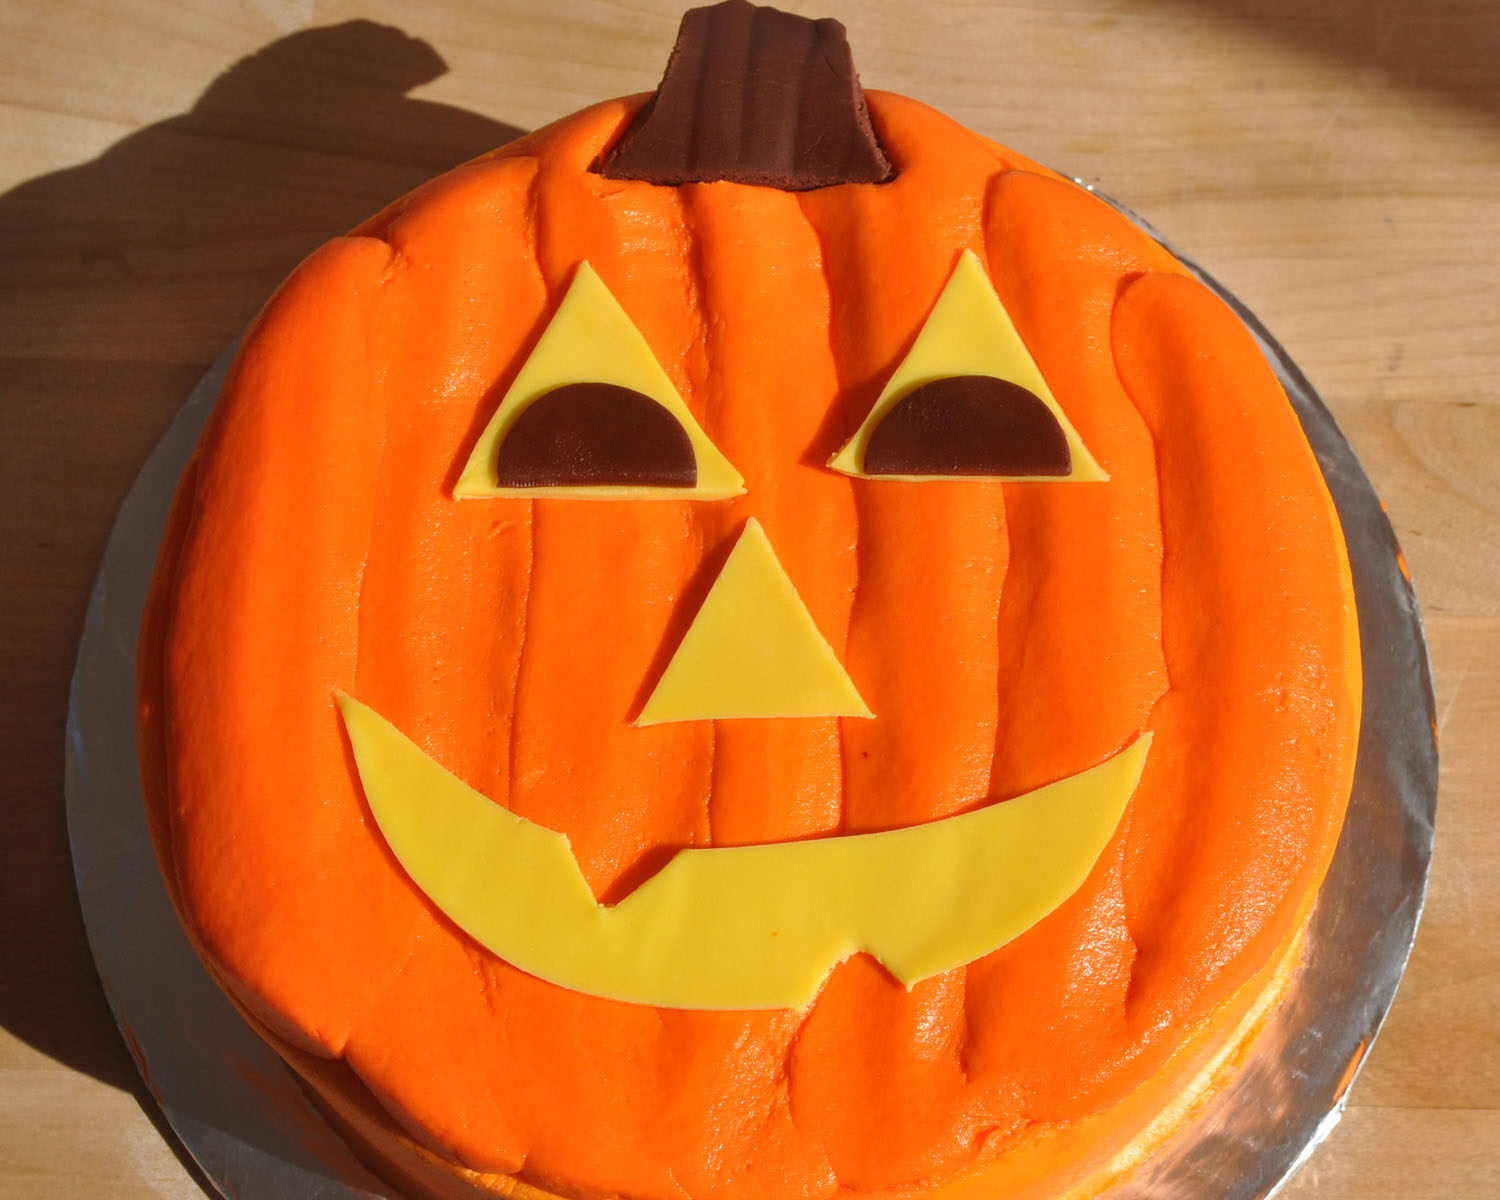 beki cooks cake blog recipes ideas - Simple Halloween Cake Decorating Ideas